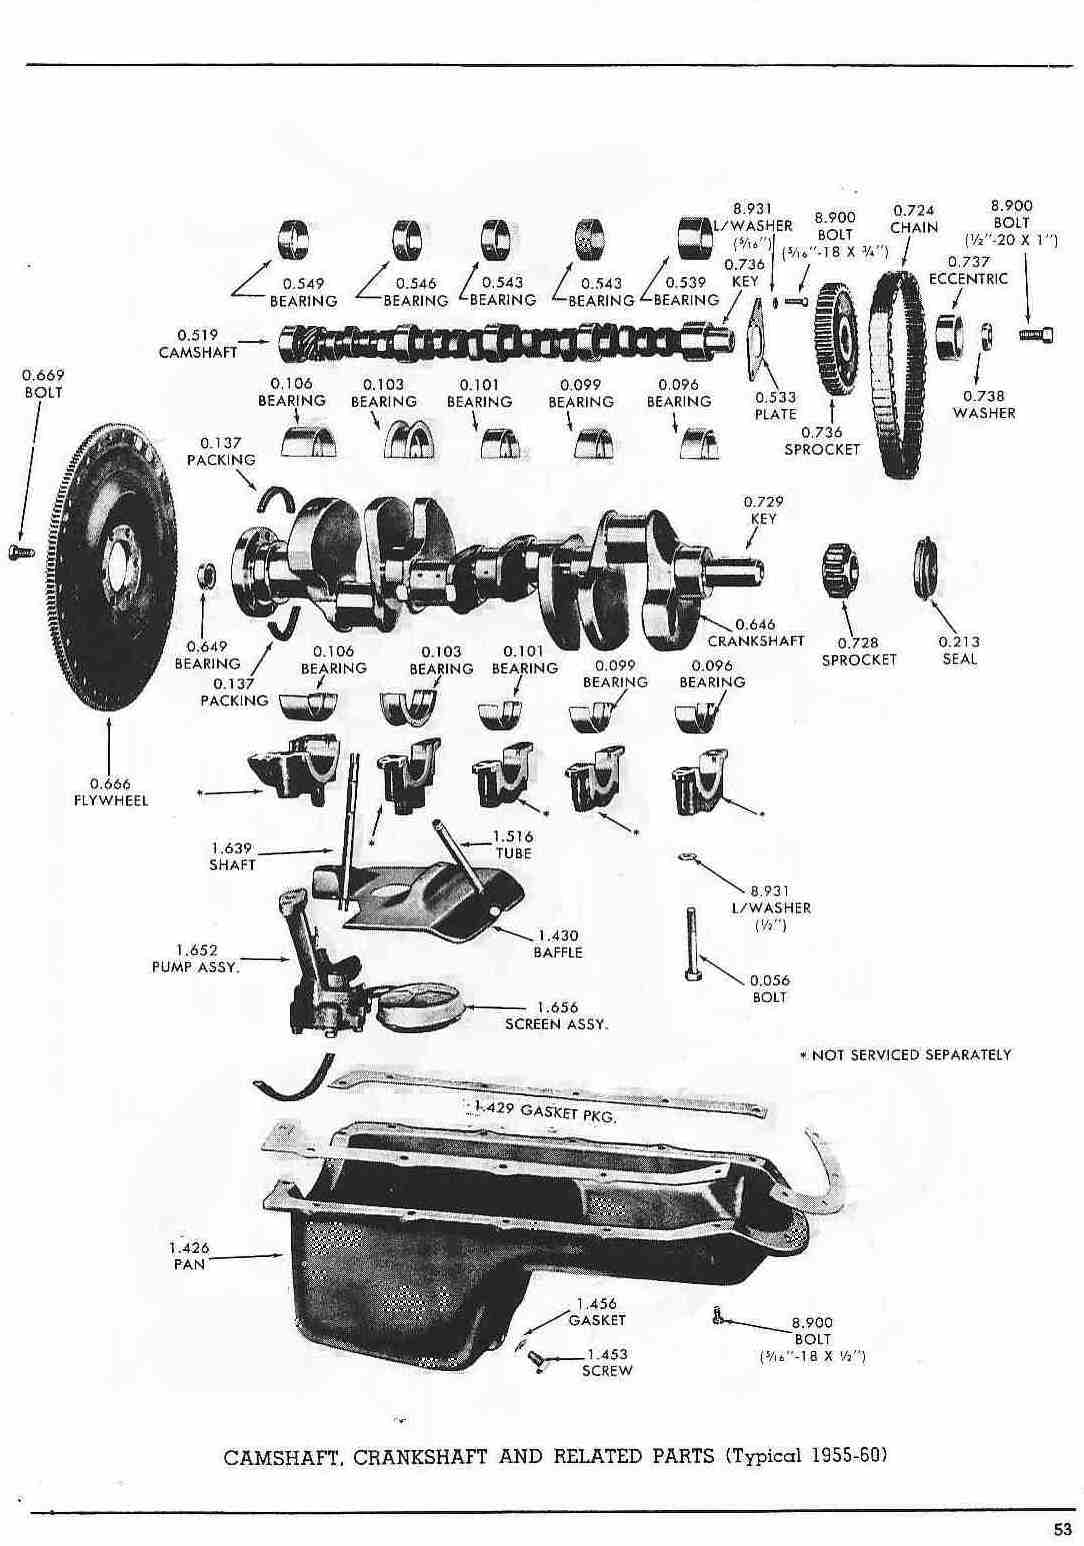 Pontiac 1960 Master Parts Catalog